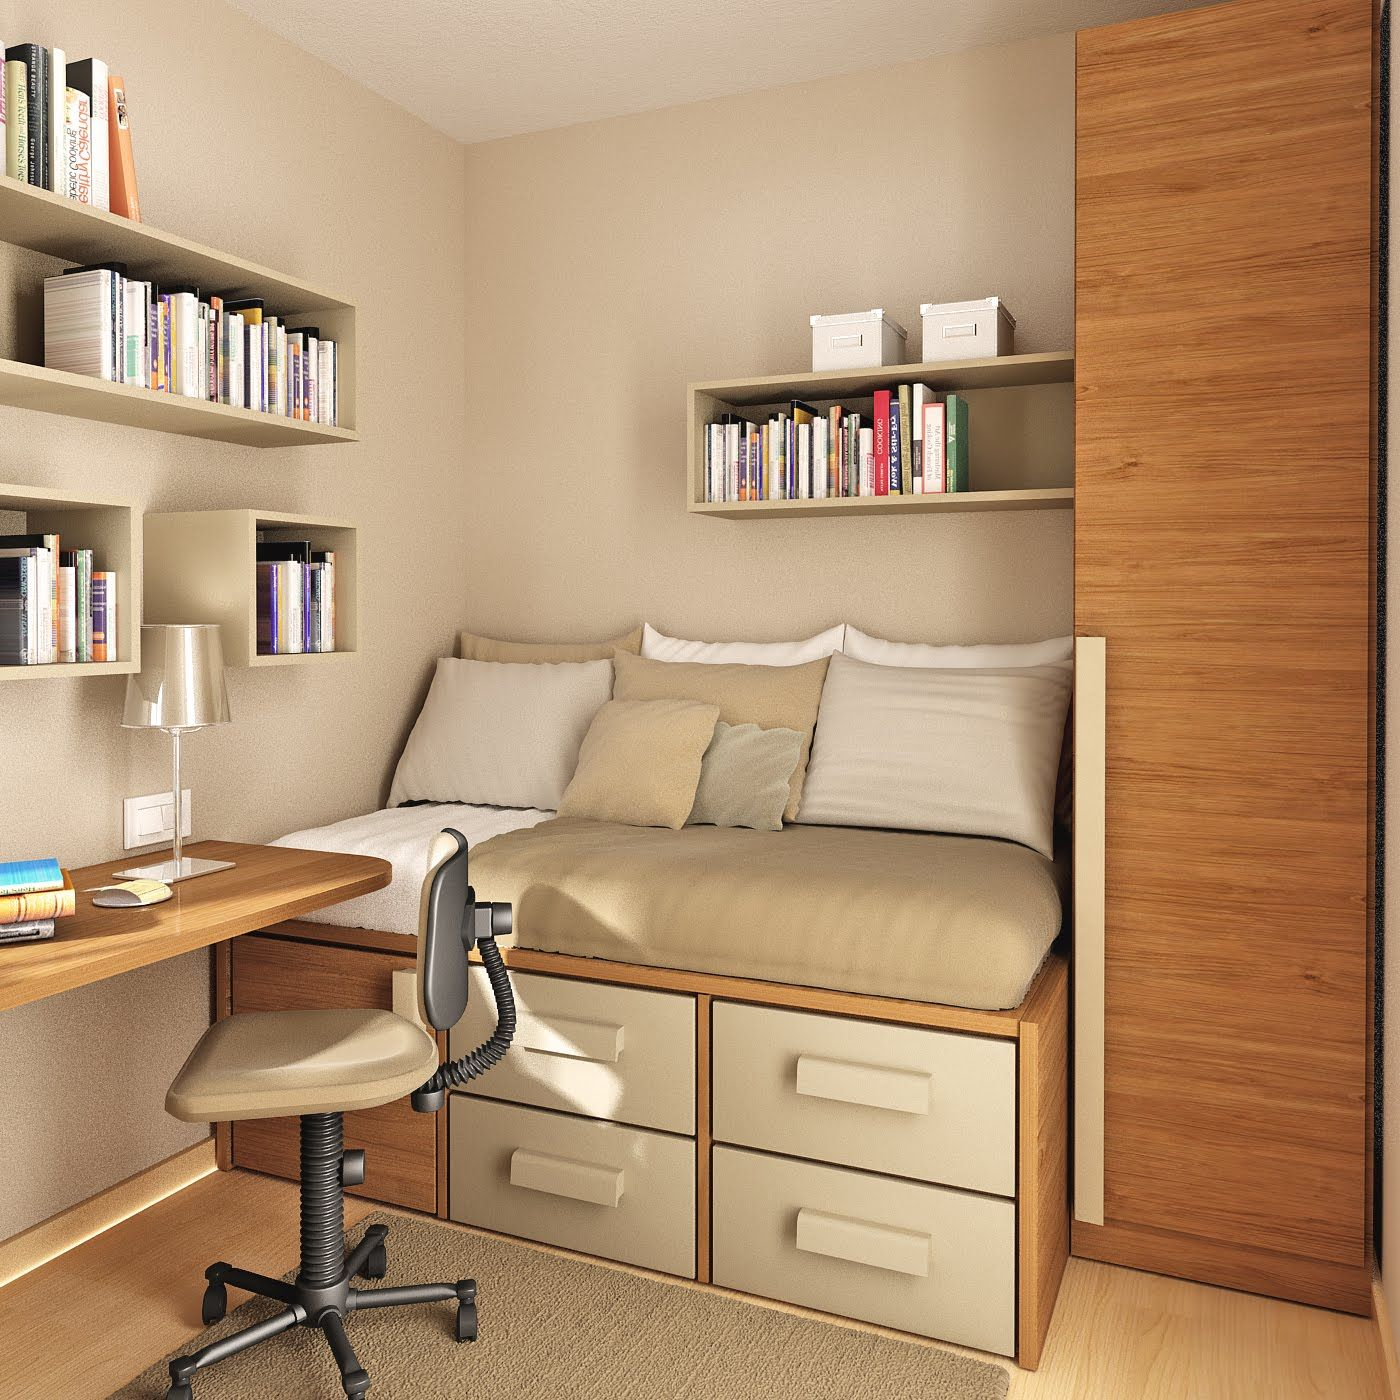 Furniture Design Study Table study room design ideas singapore - google search | boy's room